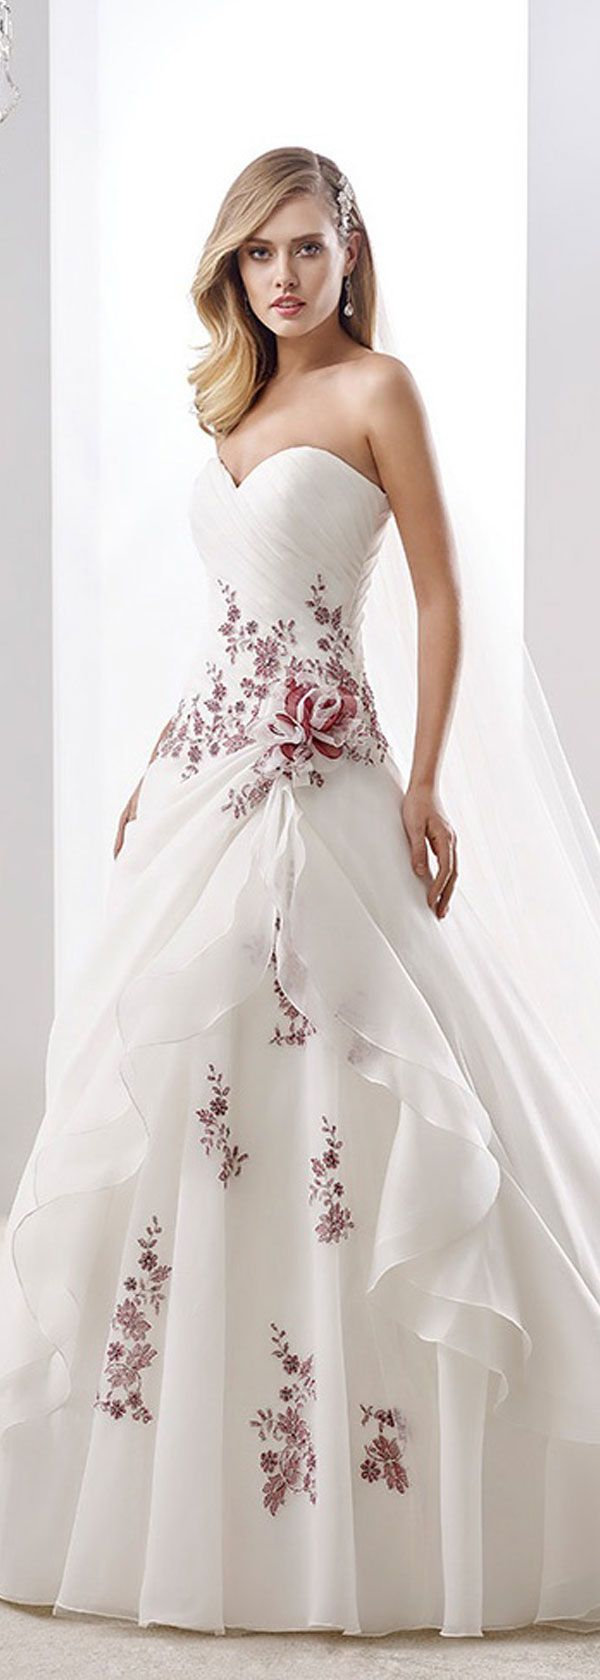 Lace dress for wedding  Glamorous Organza Sweetheart Neckline Aline Wedding Dresses With